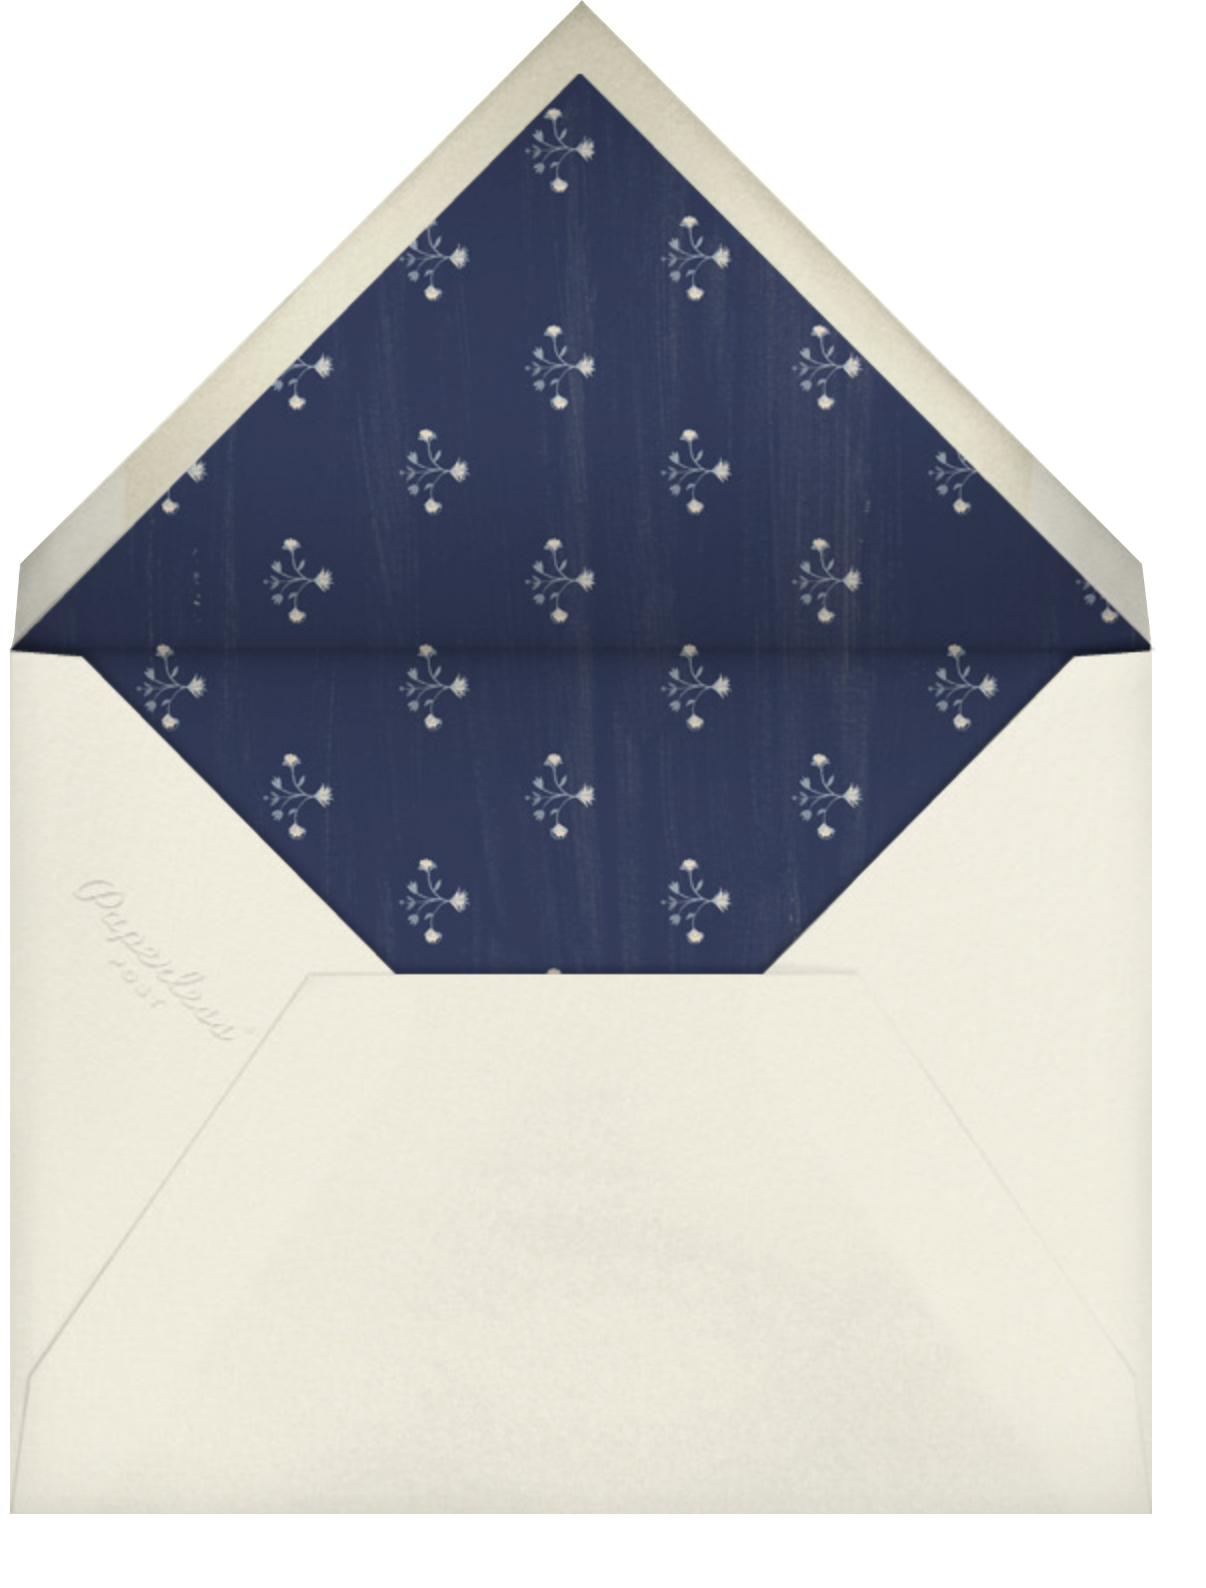 Euclid (Tall) - Paperless Post - Envelope